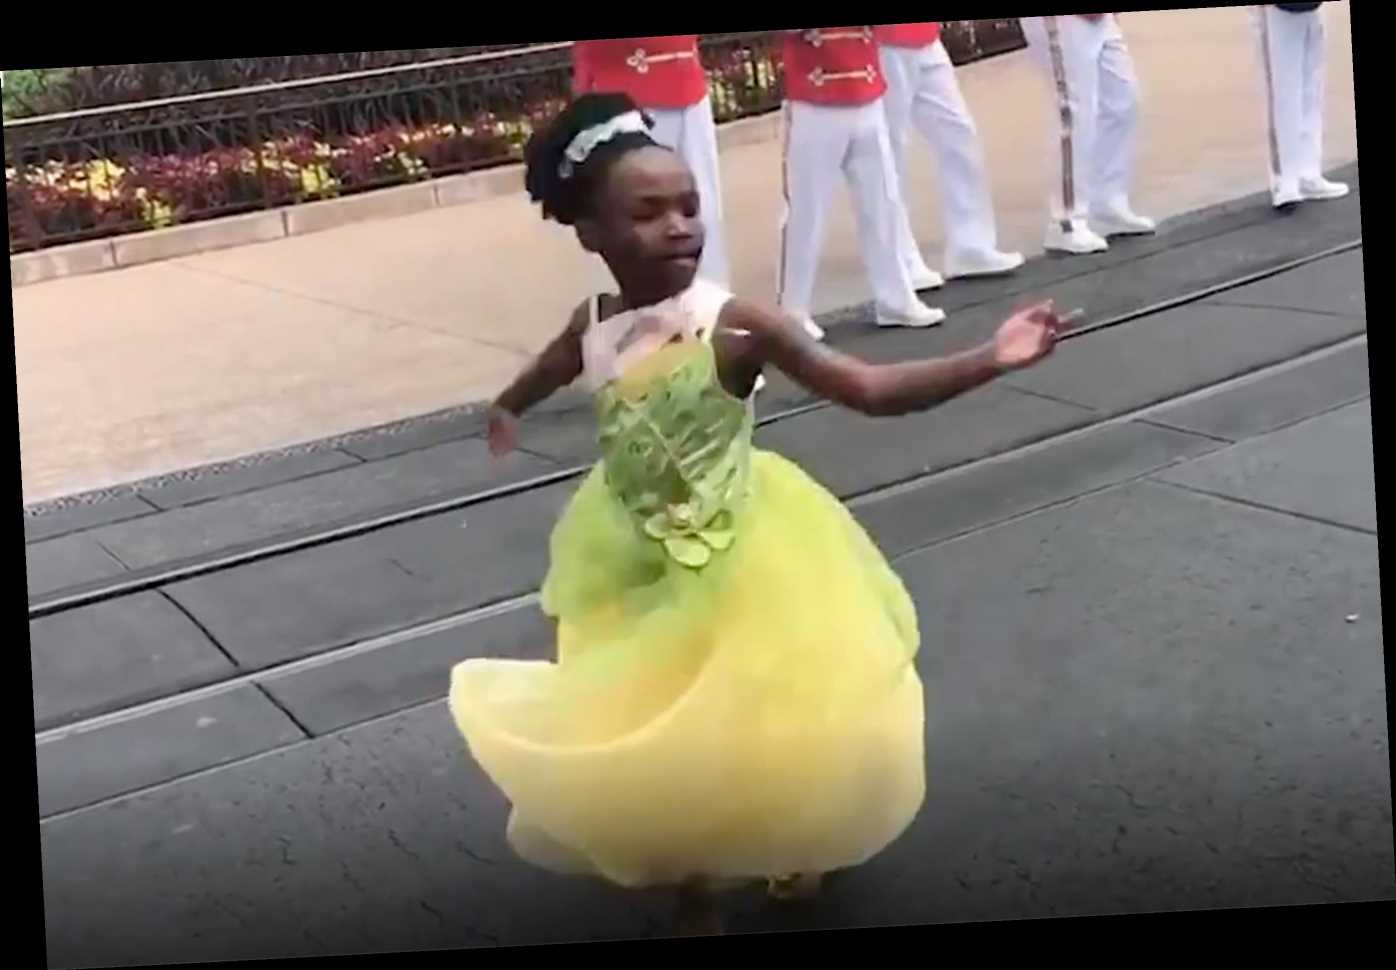 8-Year-Old at Disney World Dressed as Princess Tiana Wows Crowd with Her Dancing in Viral Video